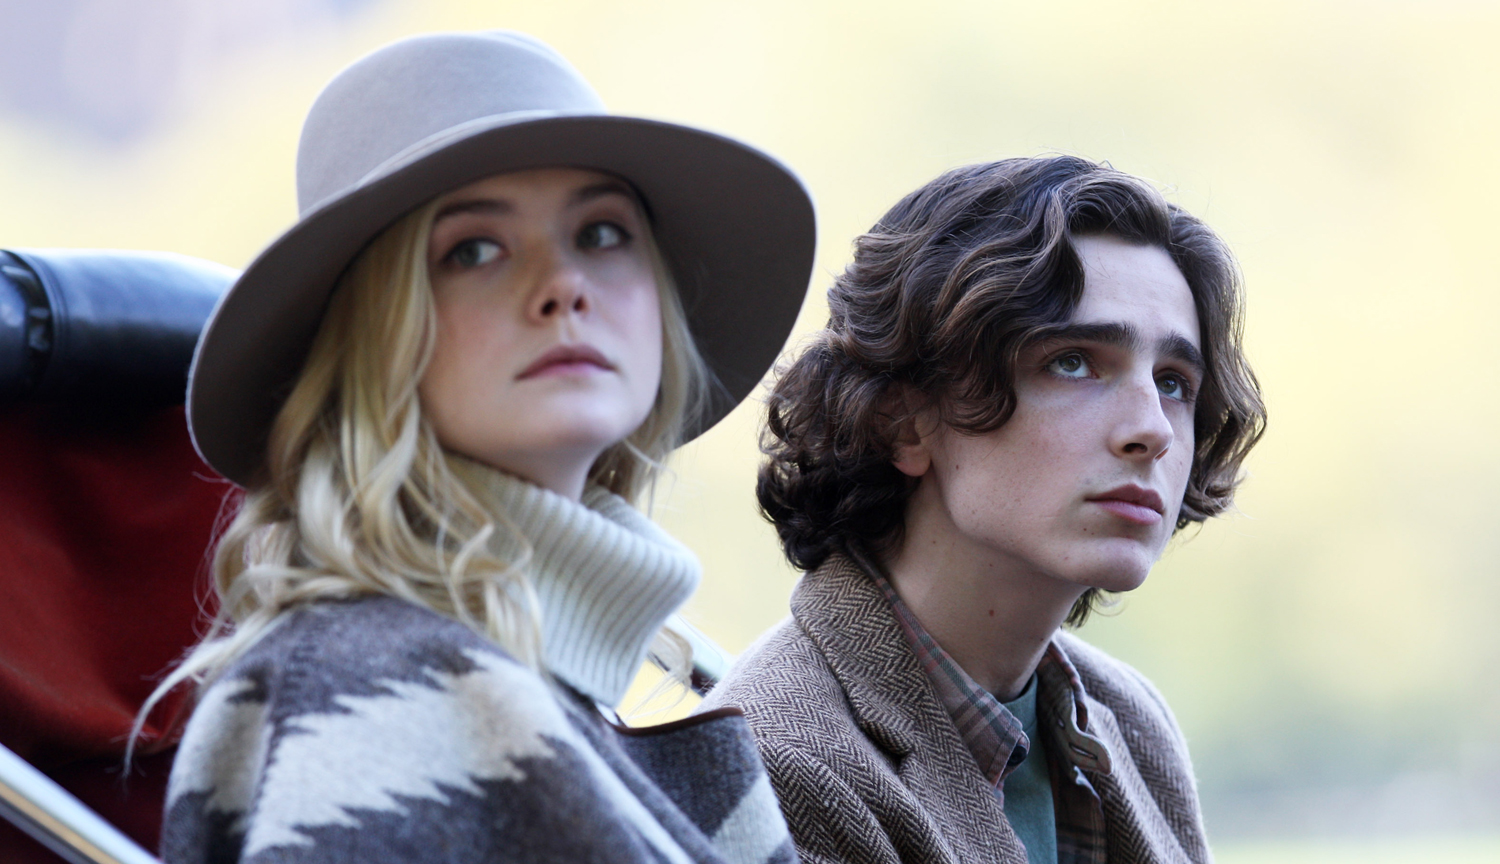 Elle Fanning and Timothée Chalamet in A Rainy Day in New York (2019)